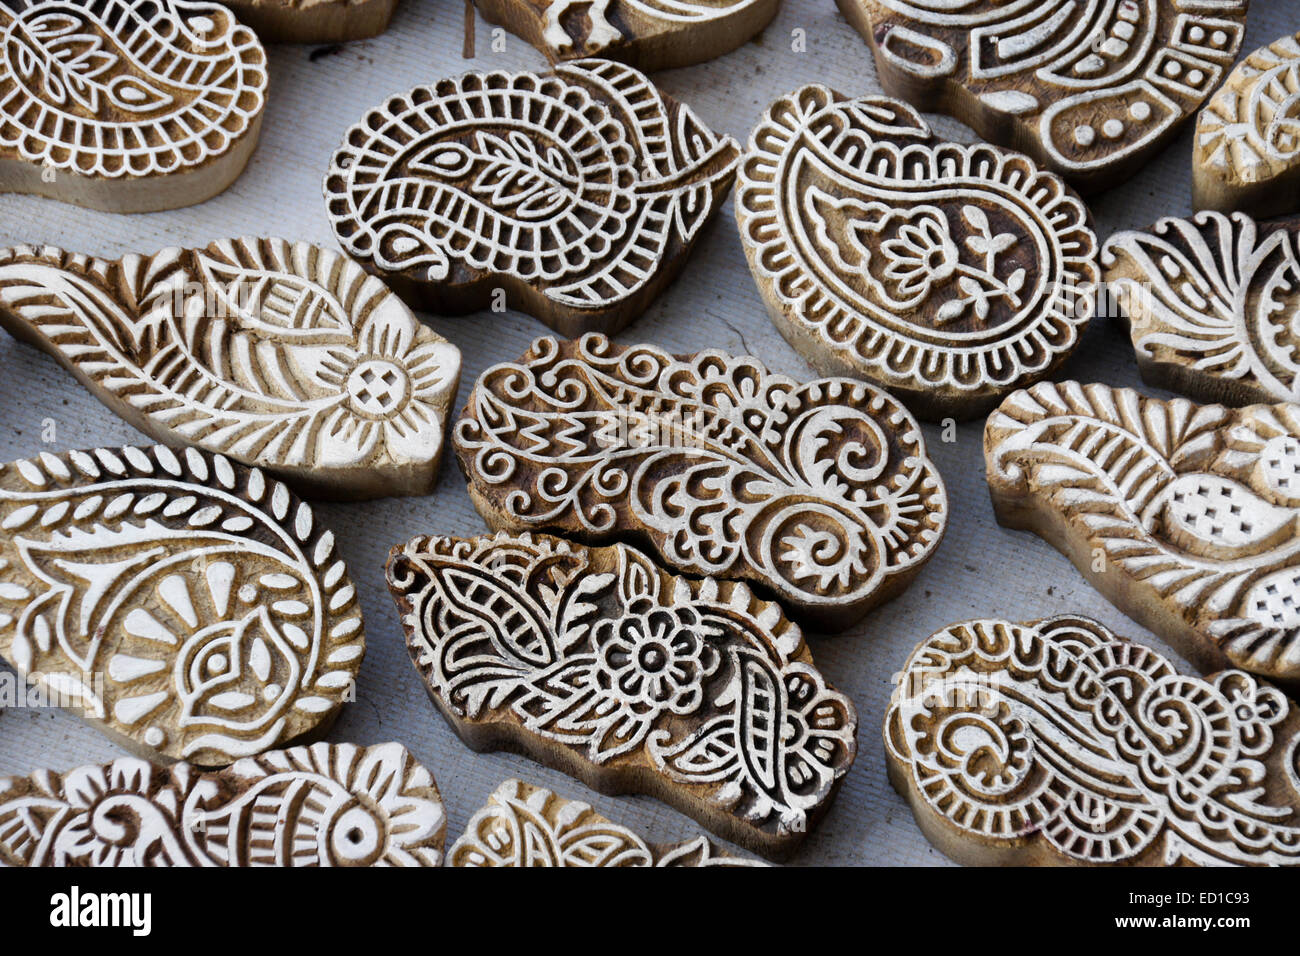 Carved wood henna stamps for sale in market, Ahmedabad, Gujarat, India - Stock Image